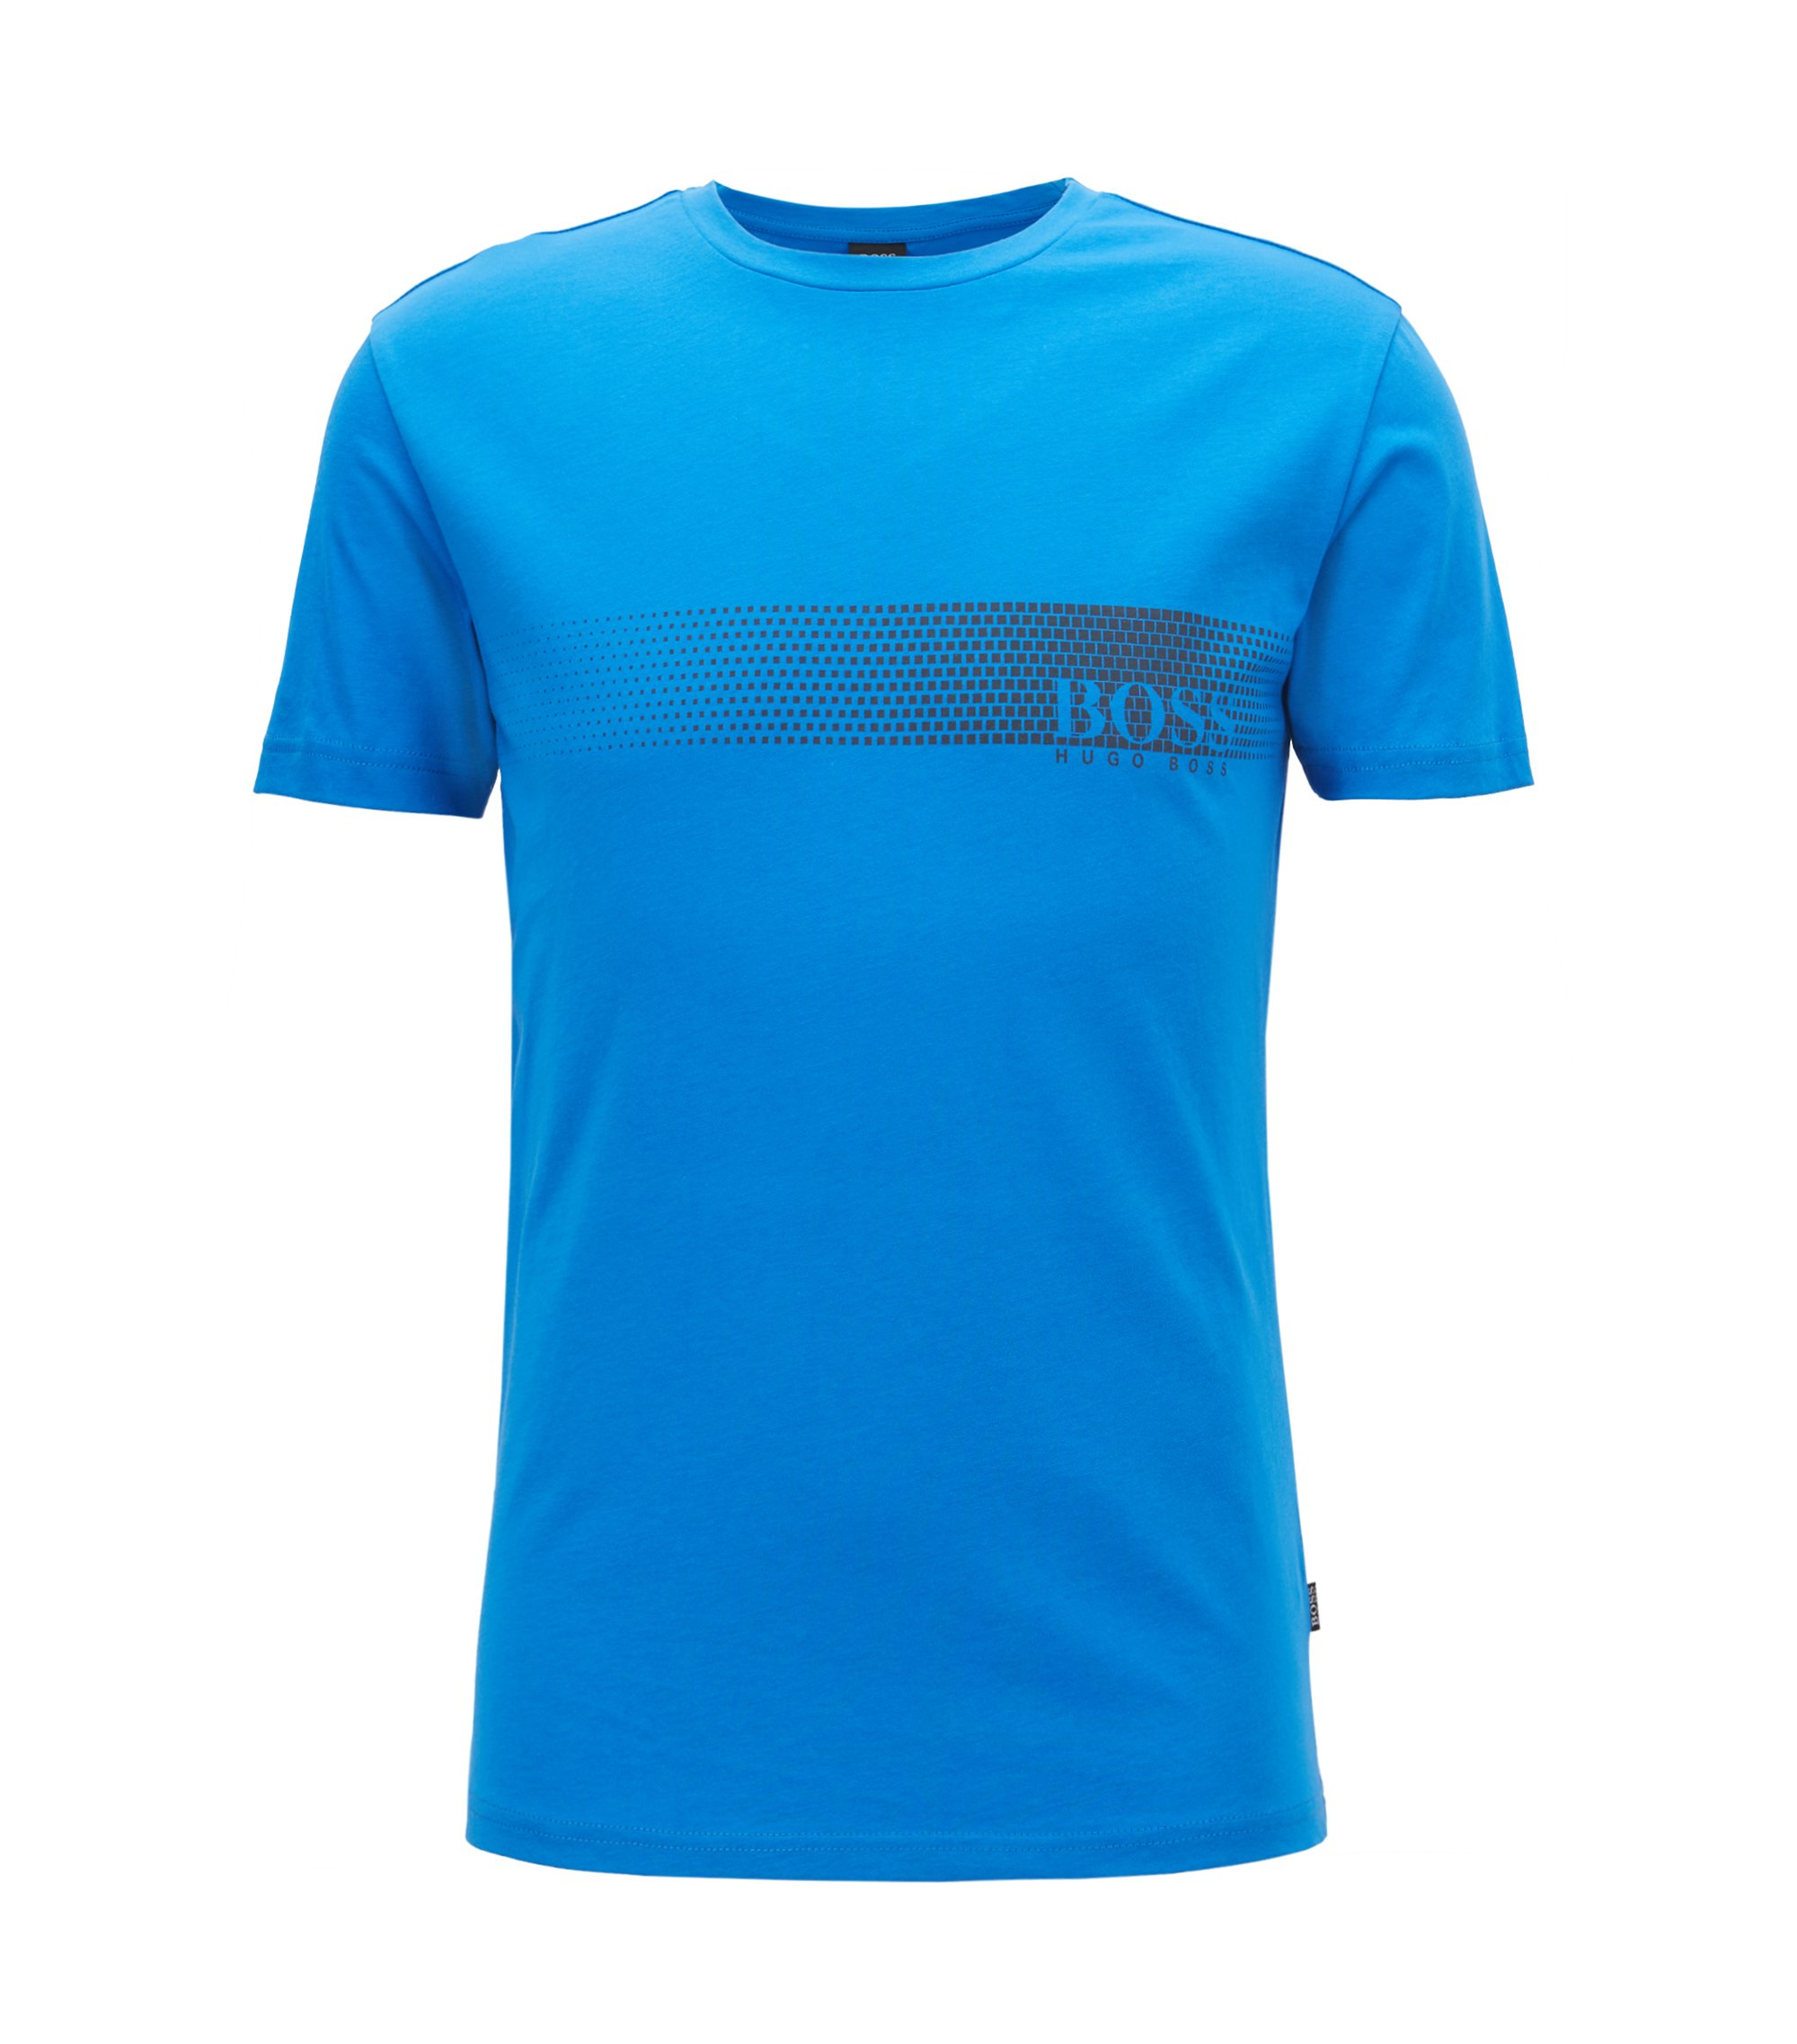 Sunsafe logo T-shirt in cotton, Blue